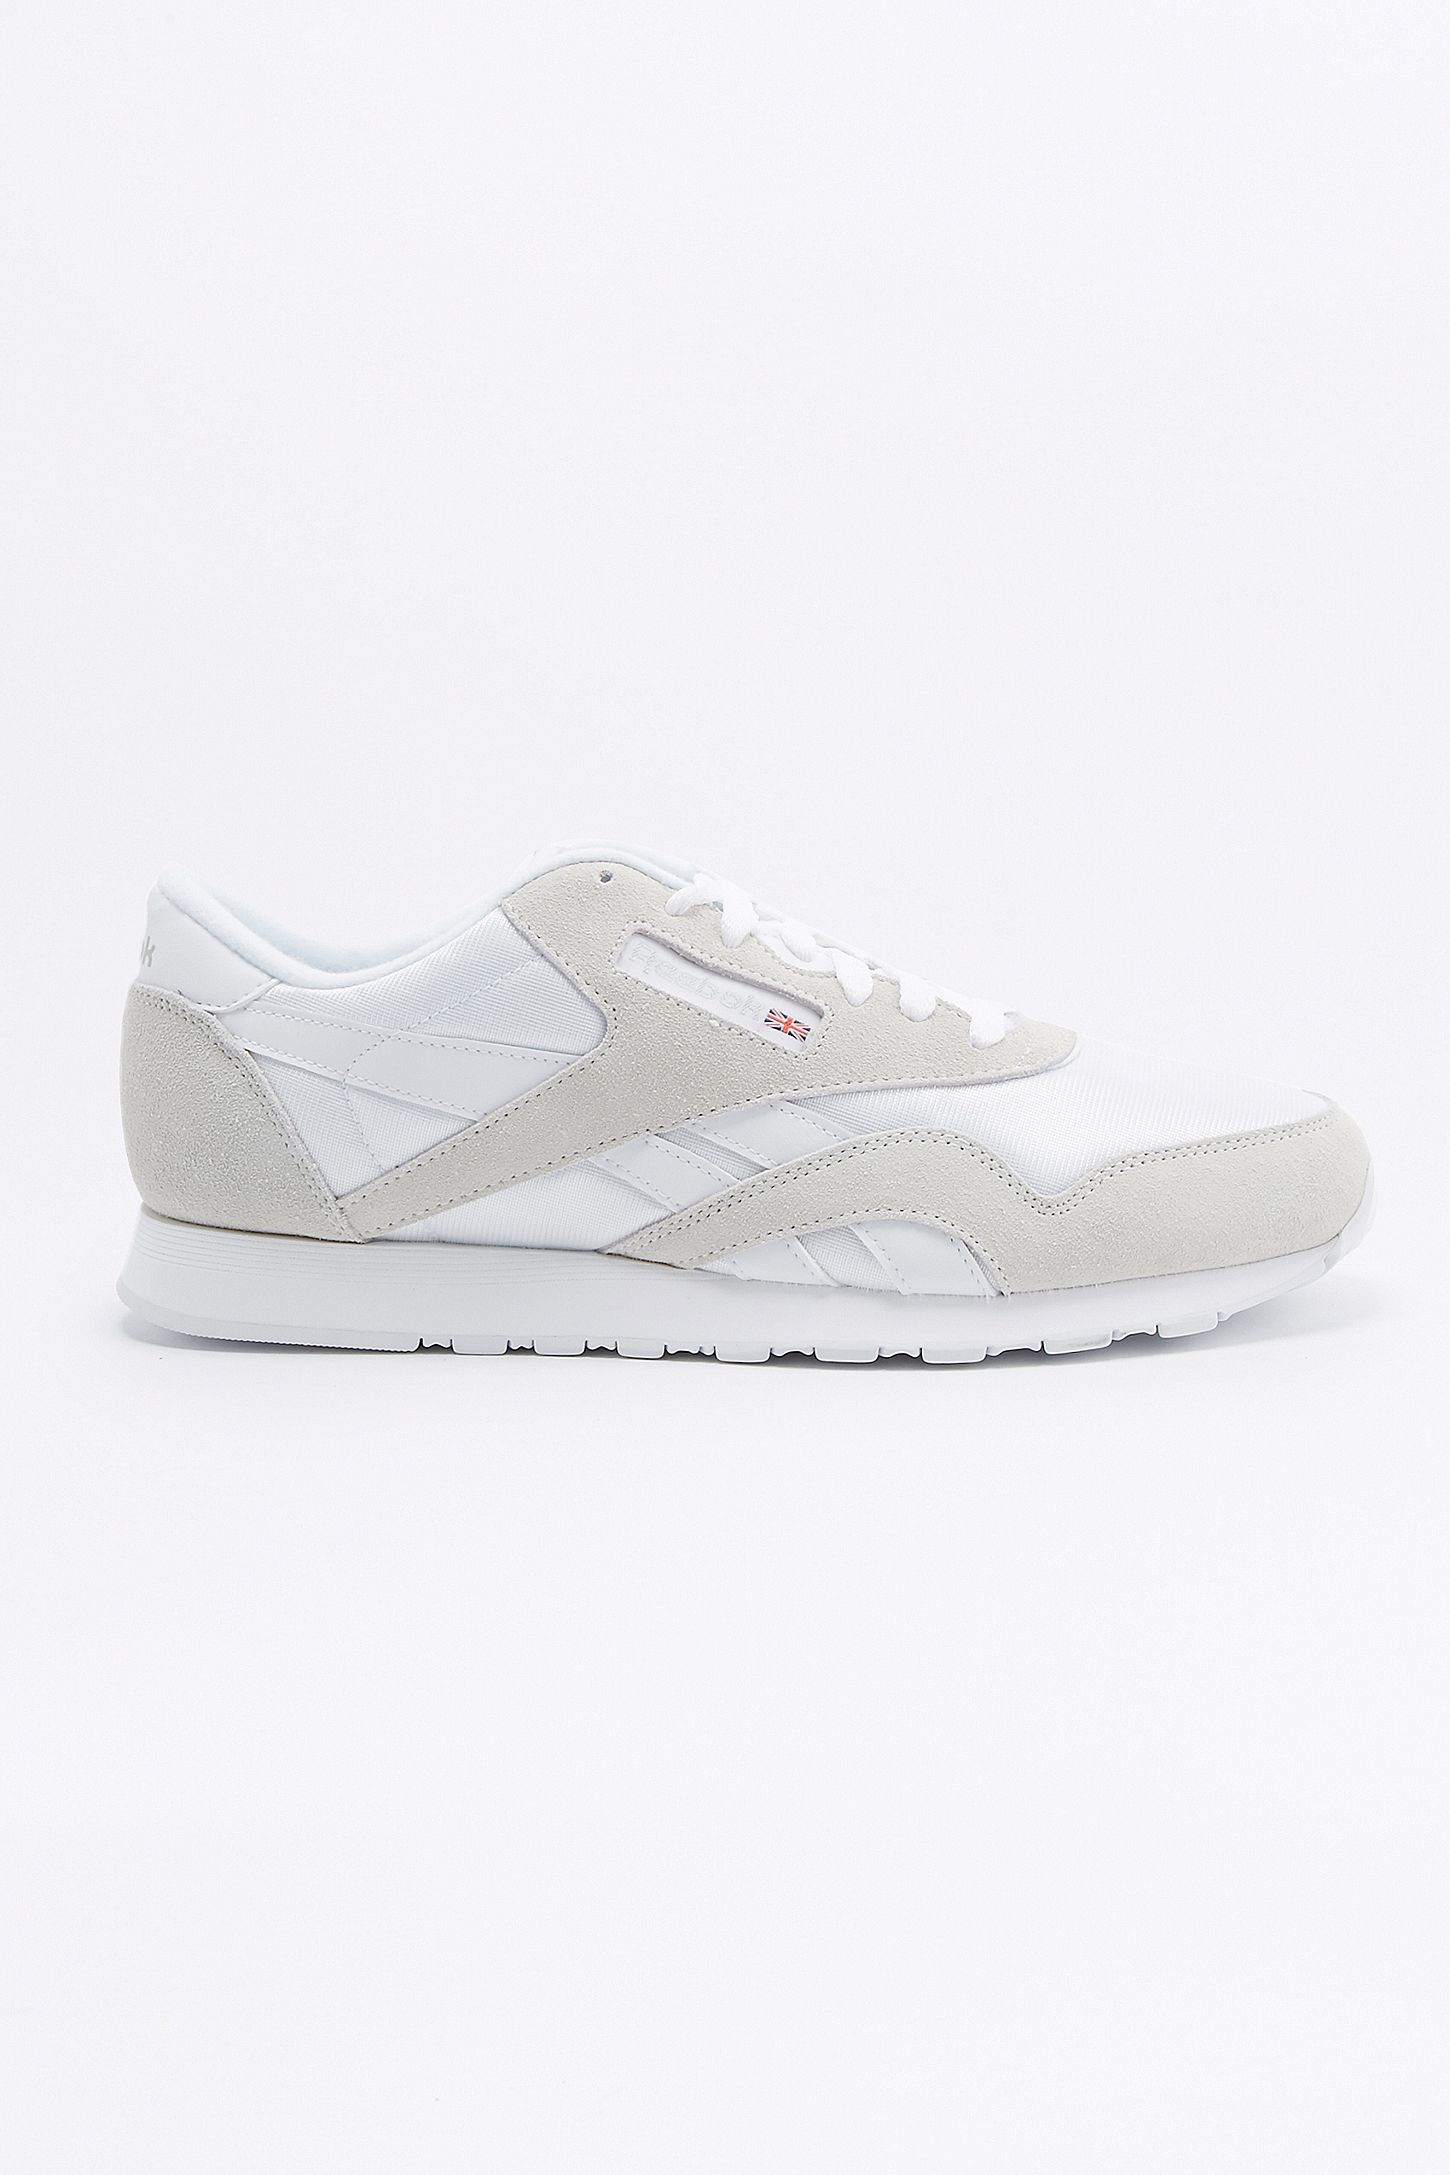 48b516cd2f8 Reebok Classic Nylon Premium Suede Chalk White Trainers. Click on image to  zoom. Hover to zoom. Double Tap to Zoom